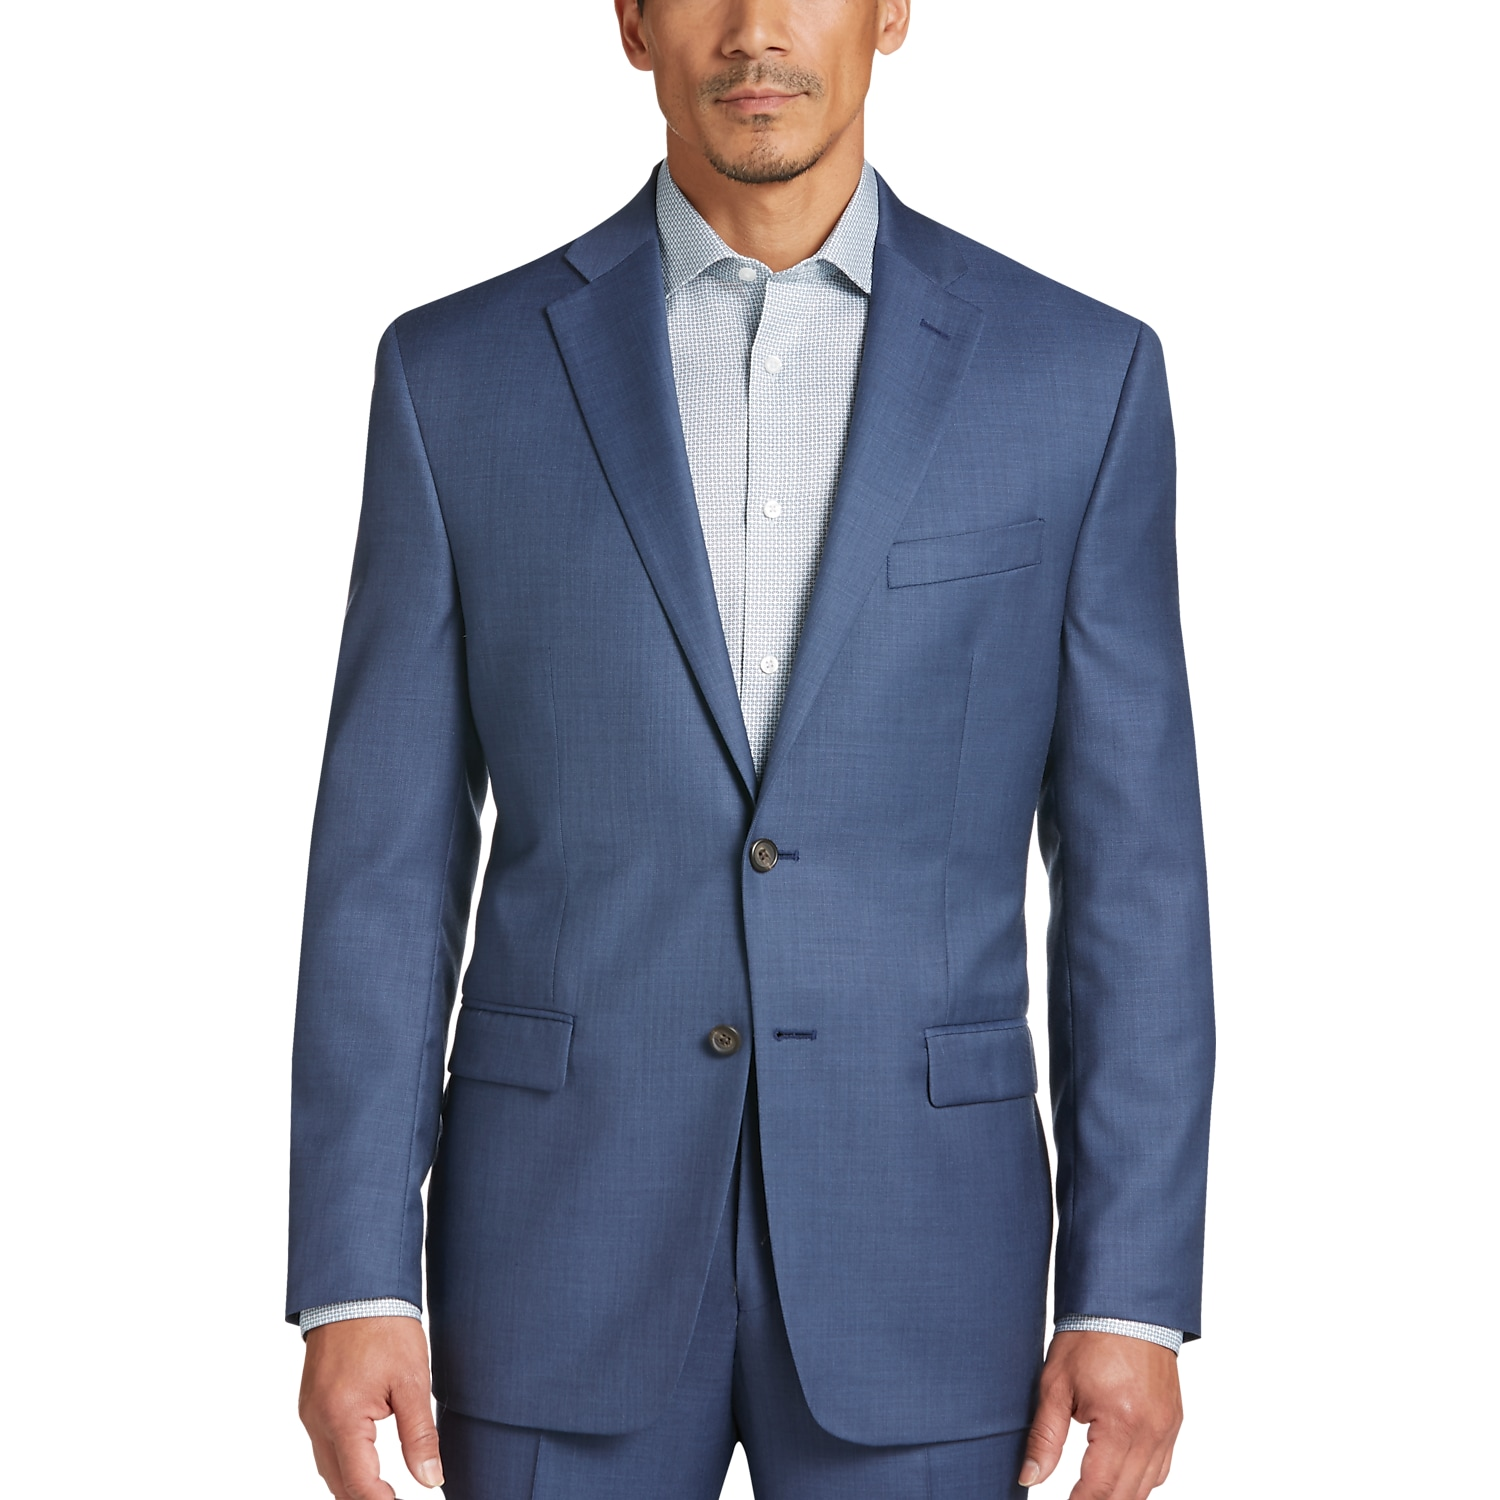 Lauren by Ralph Lauren Blue Classic Fit Suit - Men's Classic Fit ...